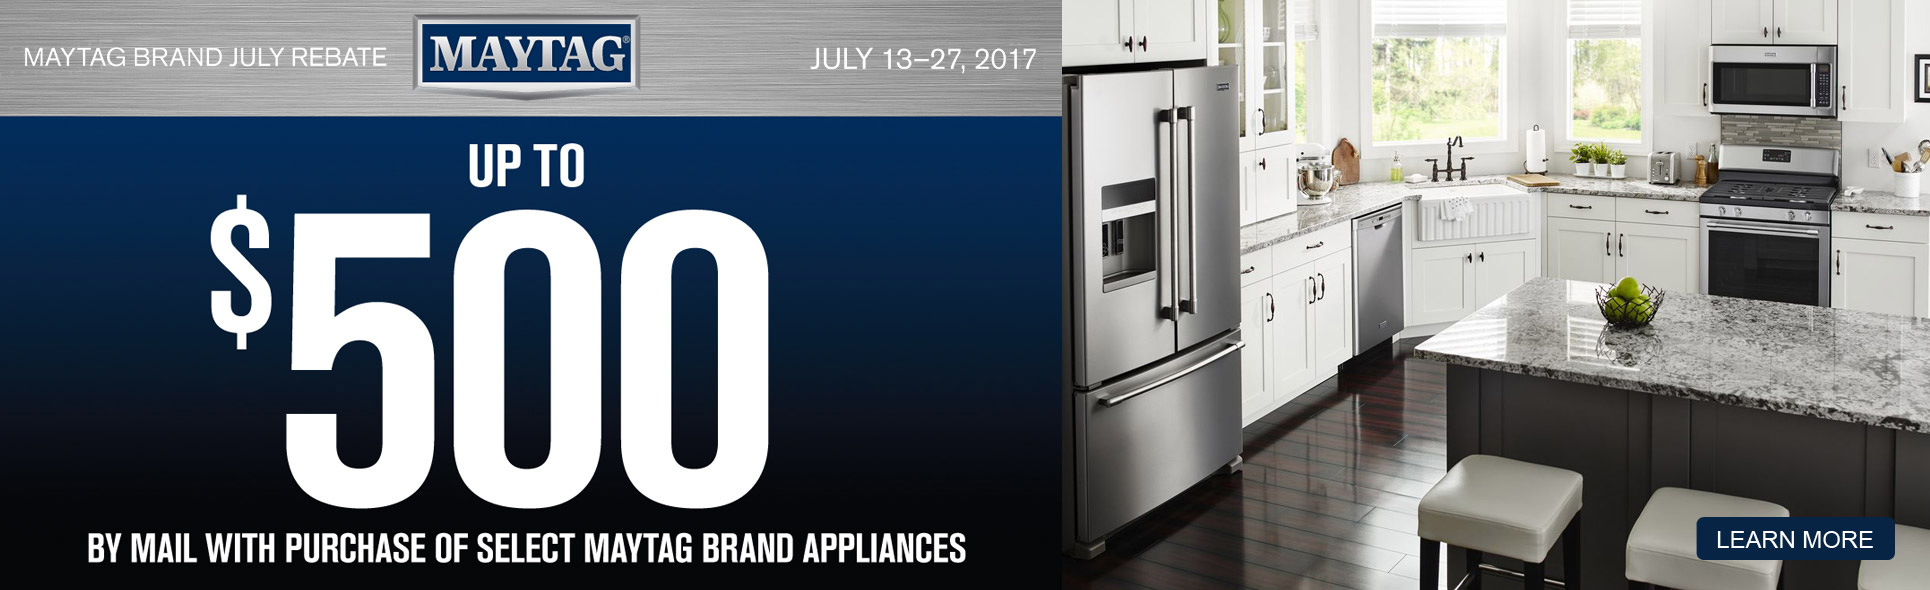 Maytag Rebate Savings- Save up to $500